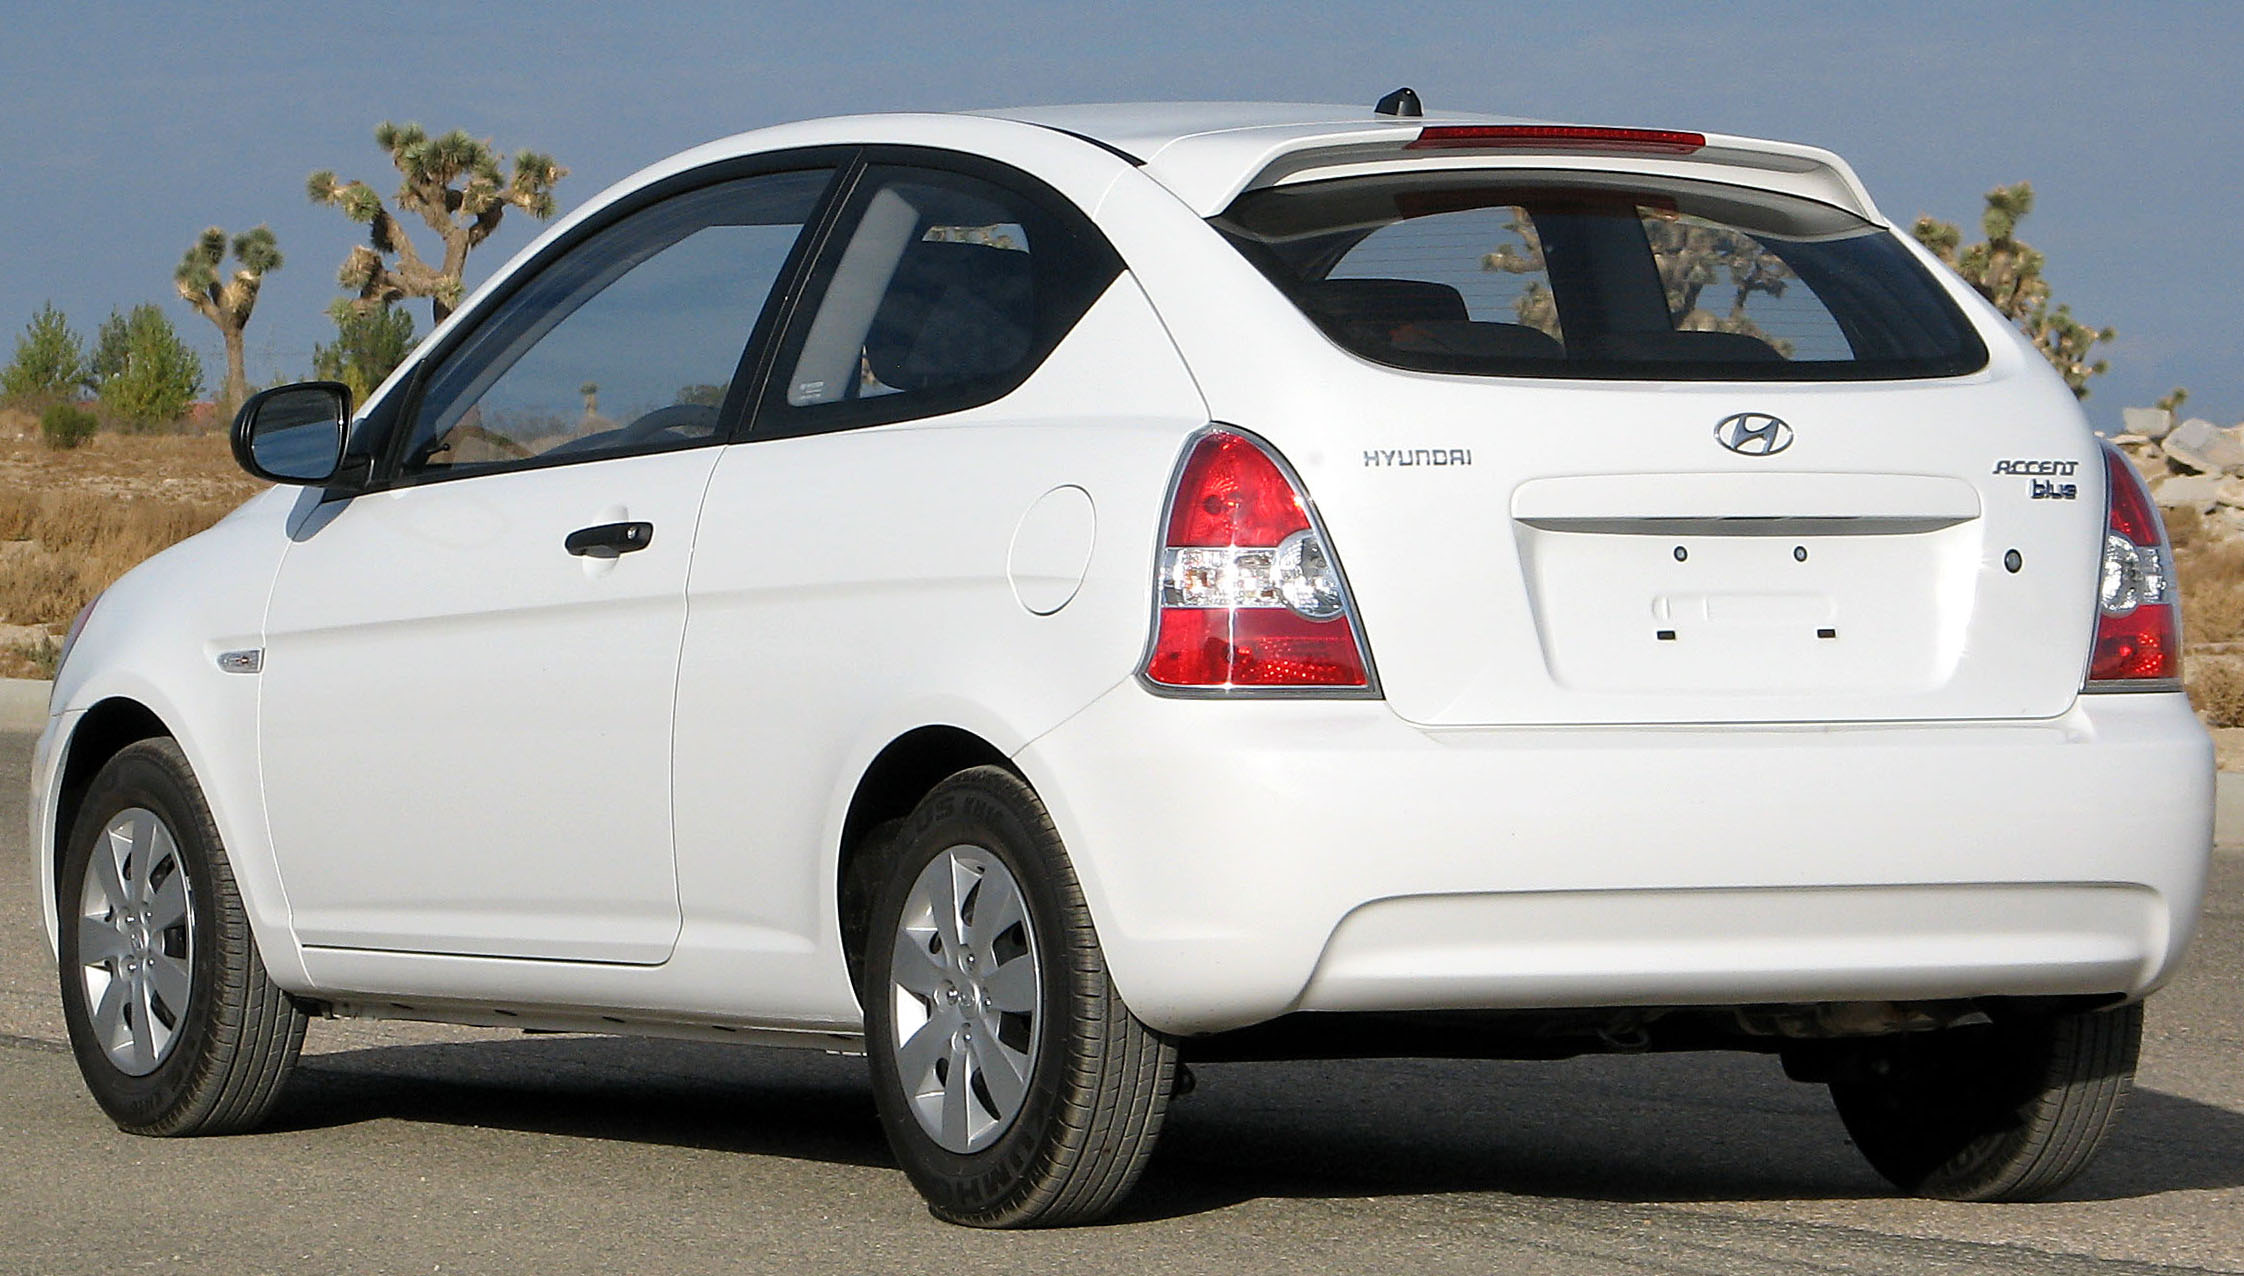 File:2010 Hyundai Accent Blue Hatch    NHTSA Rear